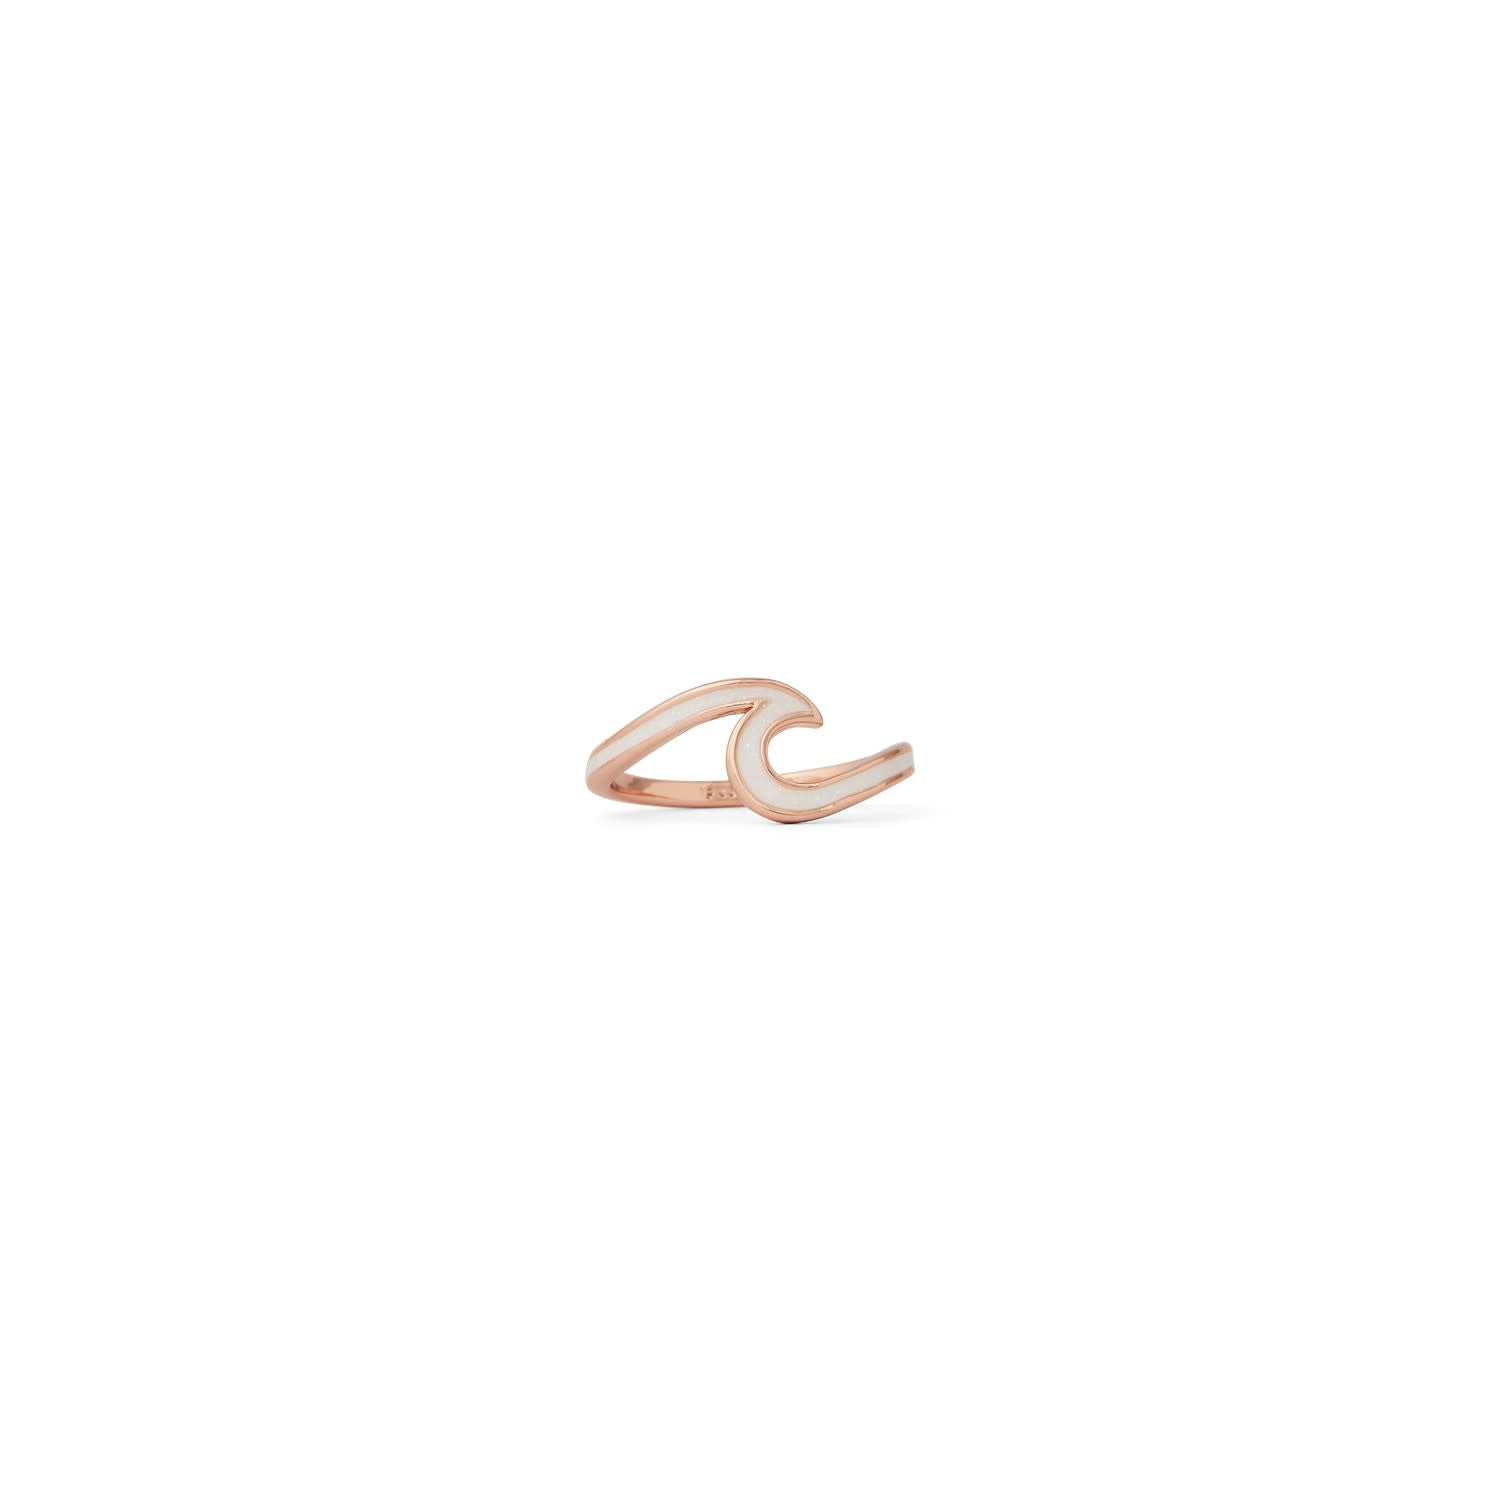 PURA VIDA ENAMELED WAVE RING ROSE GOLD